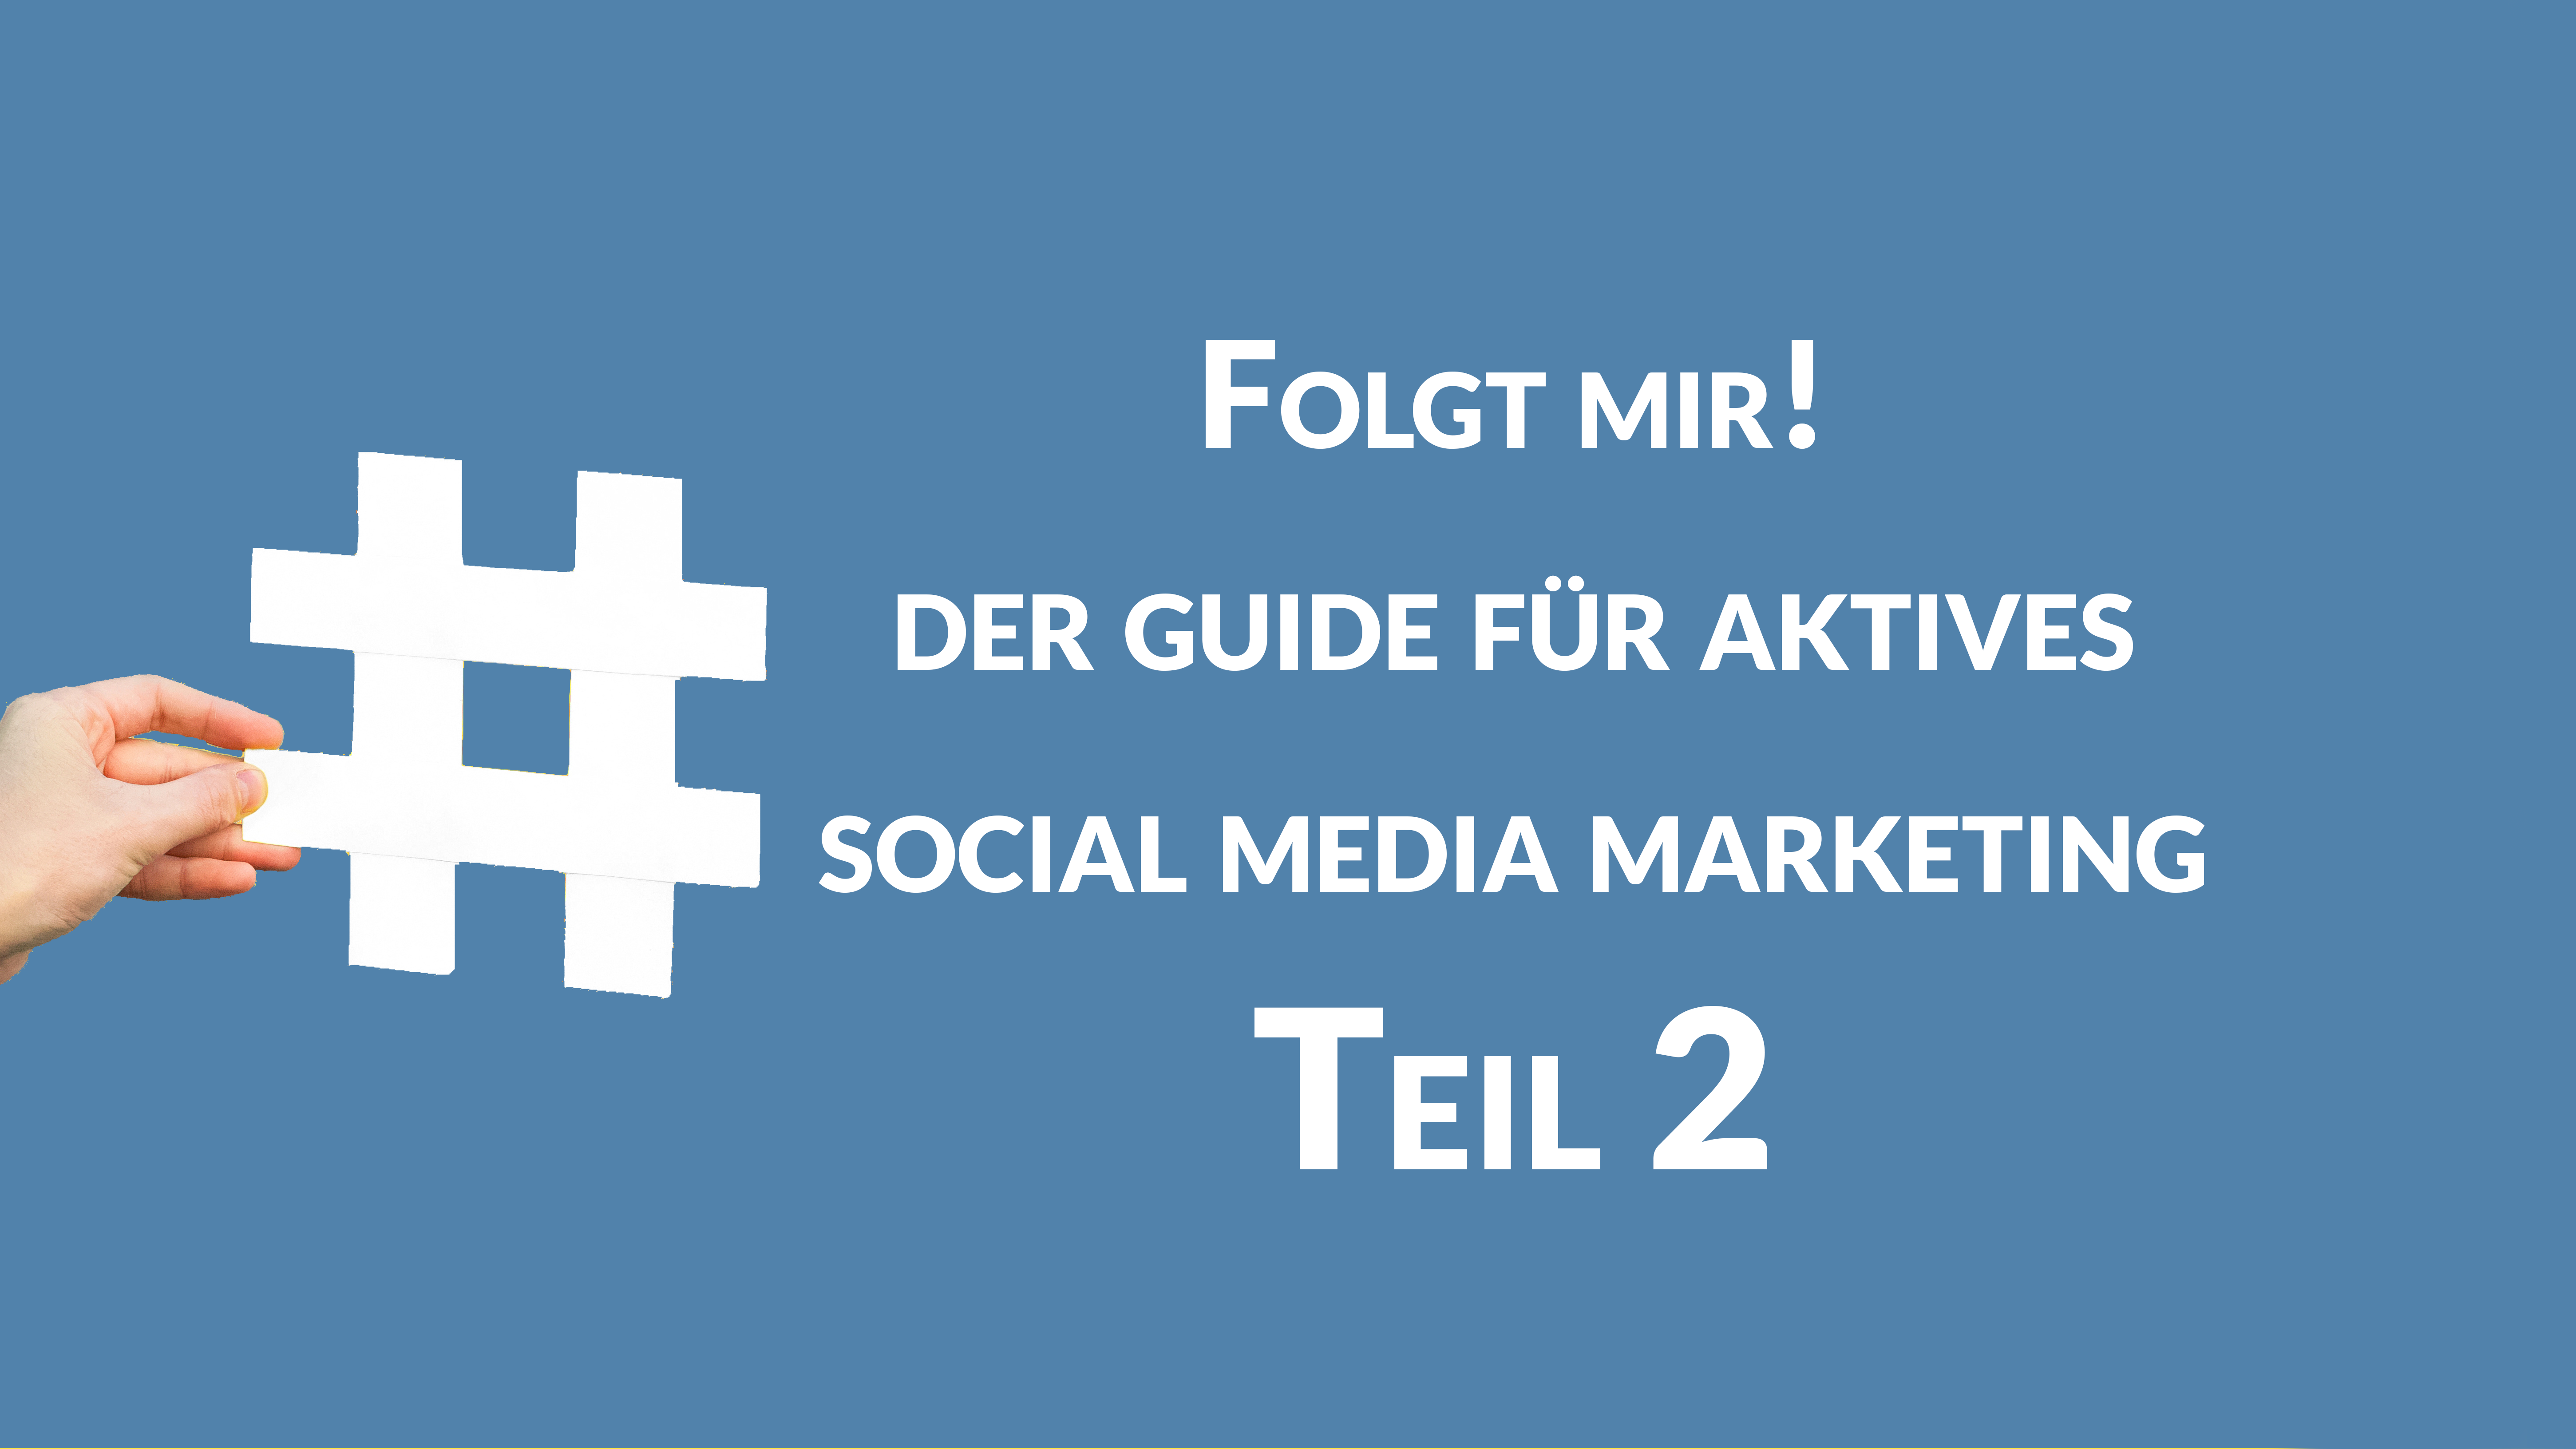 Folgt mir! Der Guide für aktives Social Media Marketing Teil 2